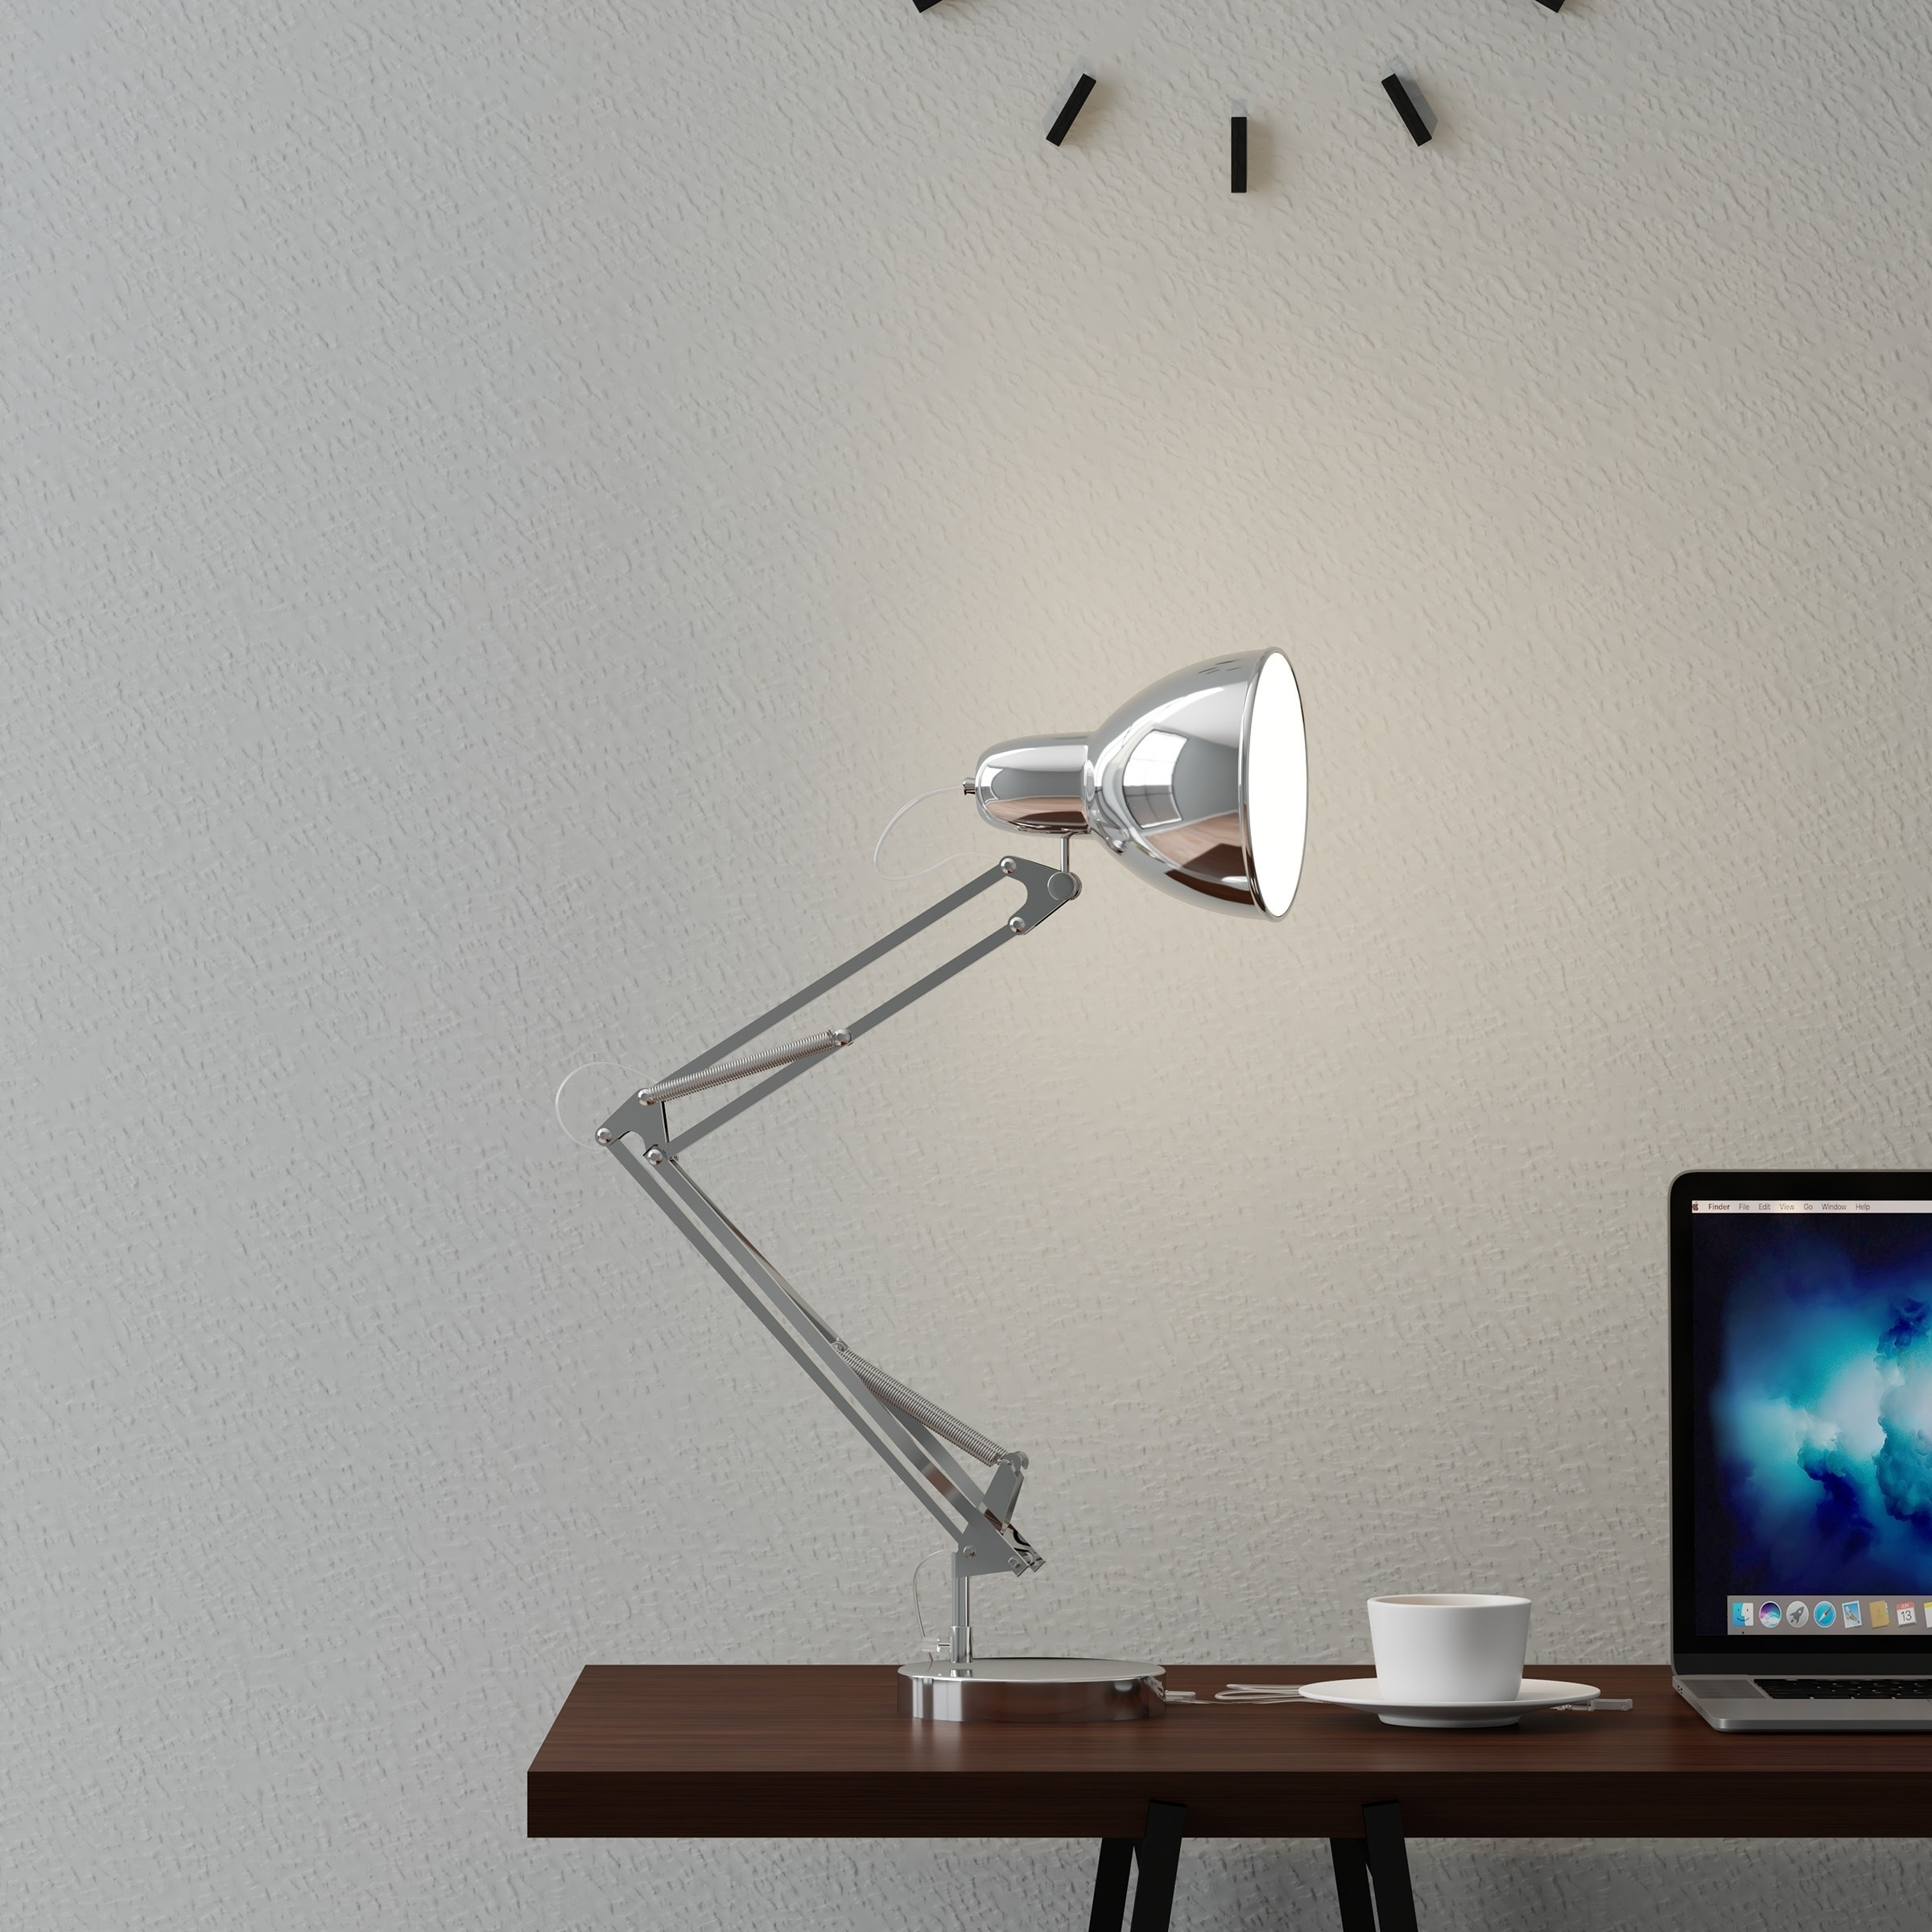 Architect Desk Lamp Led Task Light With Adjule Swing Arm For Home And Office Lavish Metal Chrome